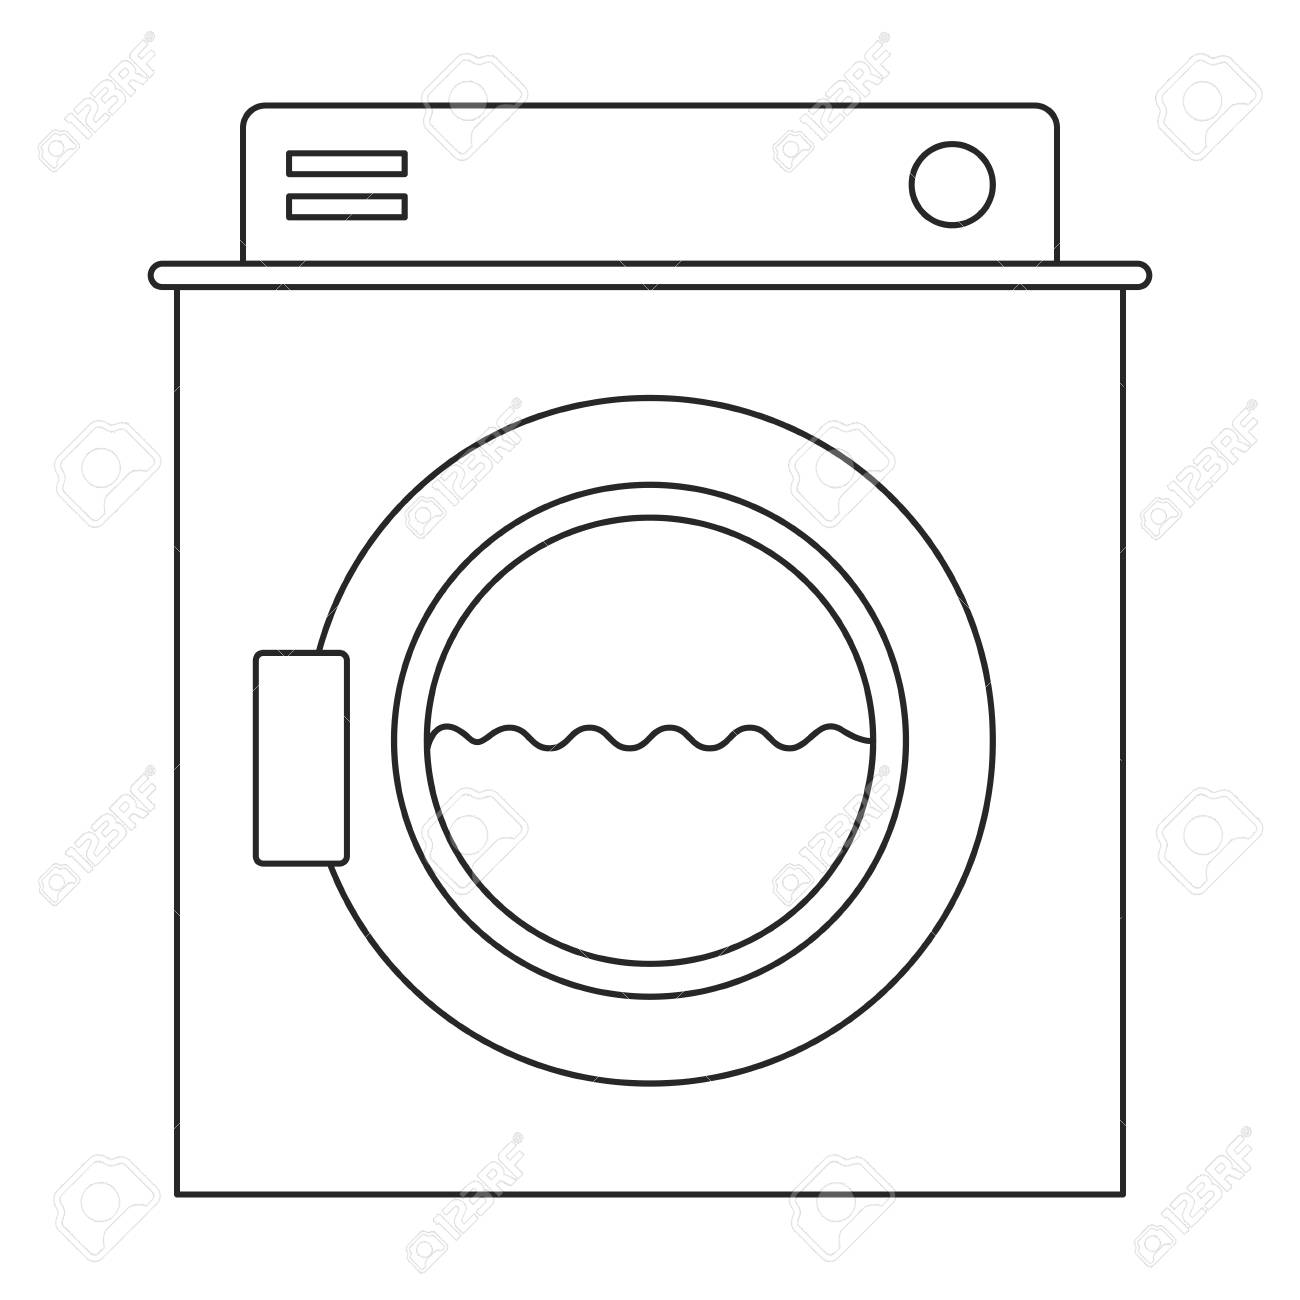 hight resolution of monochrome silhouette of washing machine with water medium level vector illustration stock vector 84473897